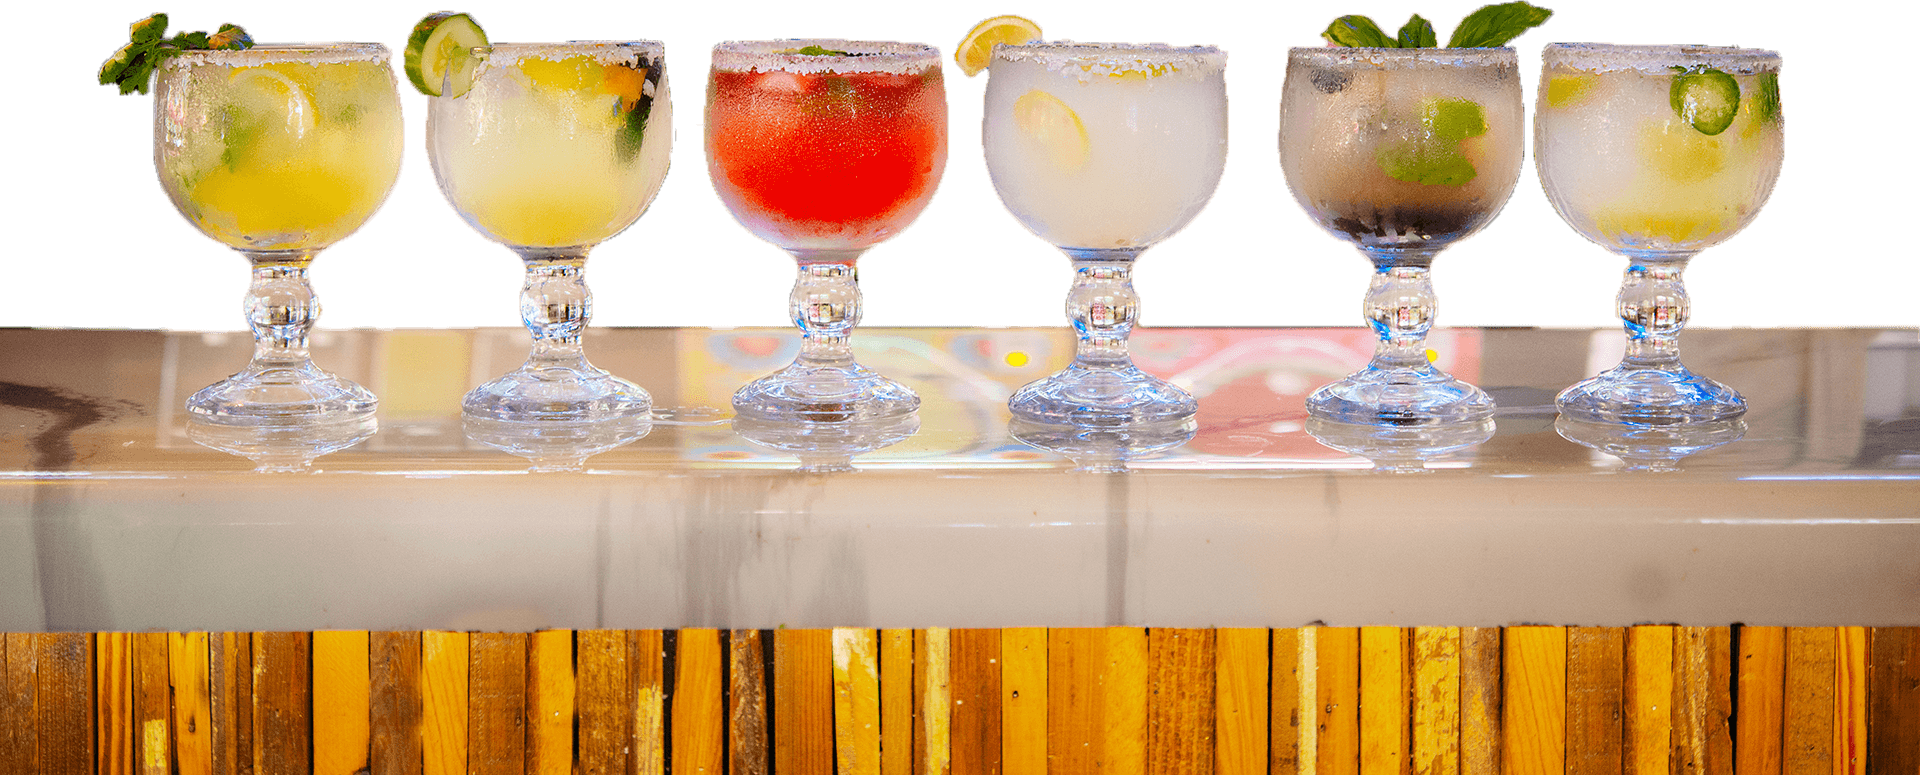 Row of colorful La Carreta margaritas on the bar.